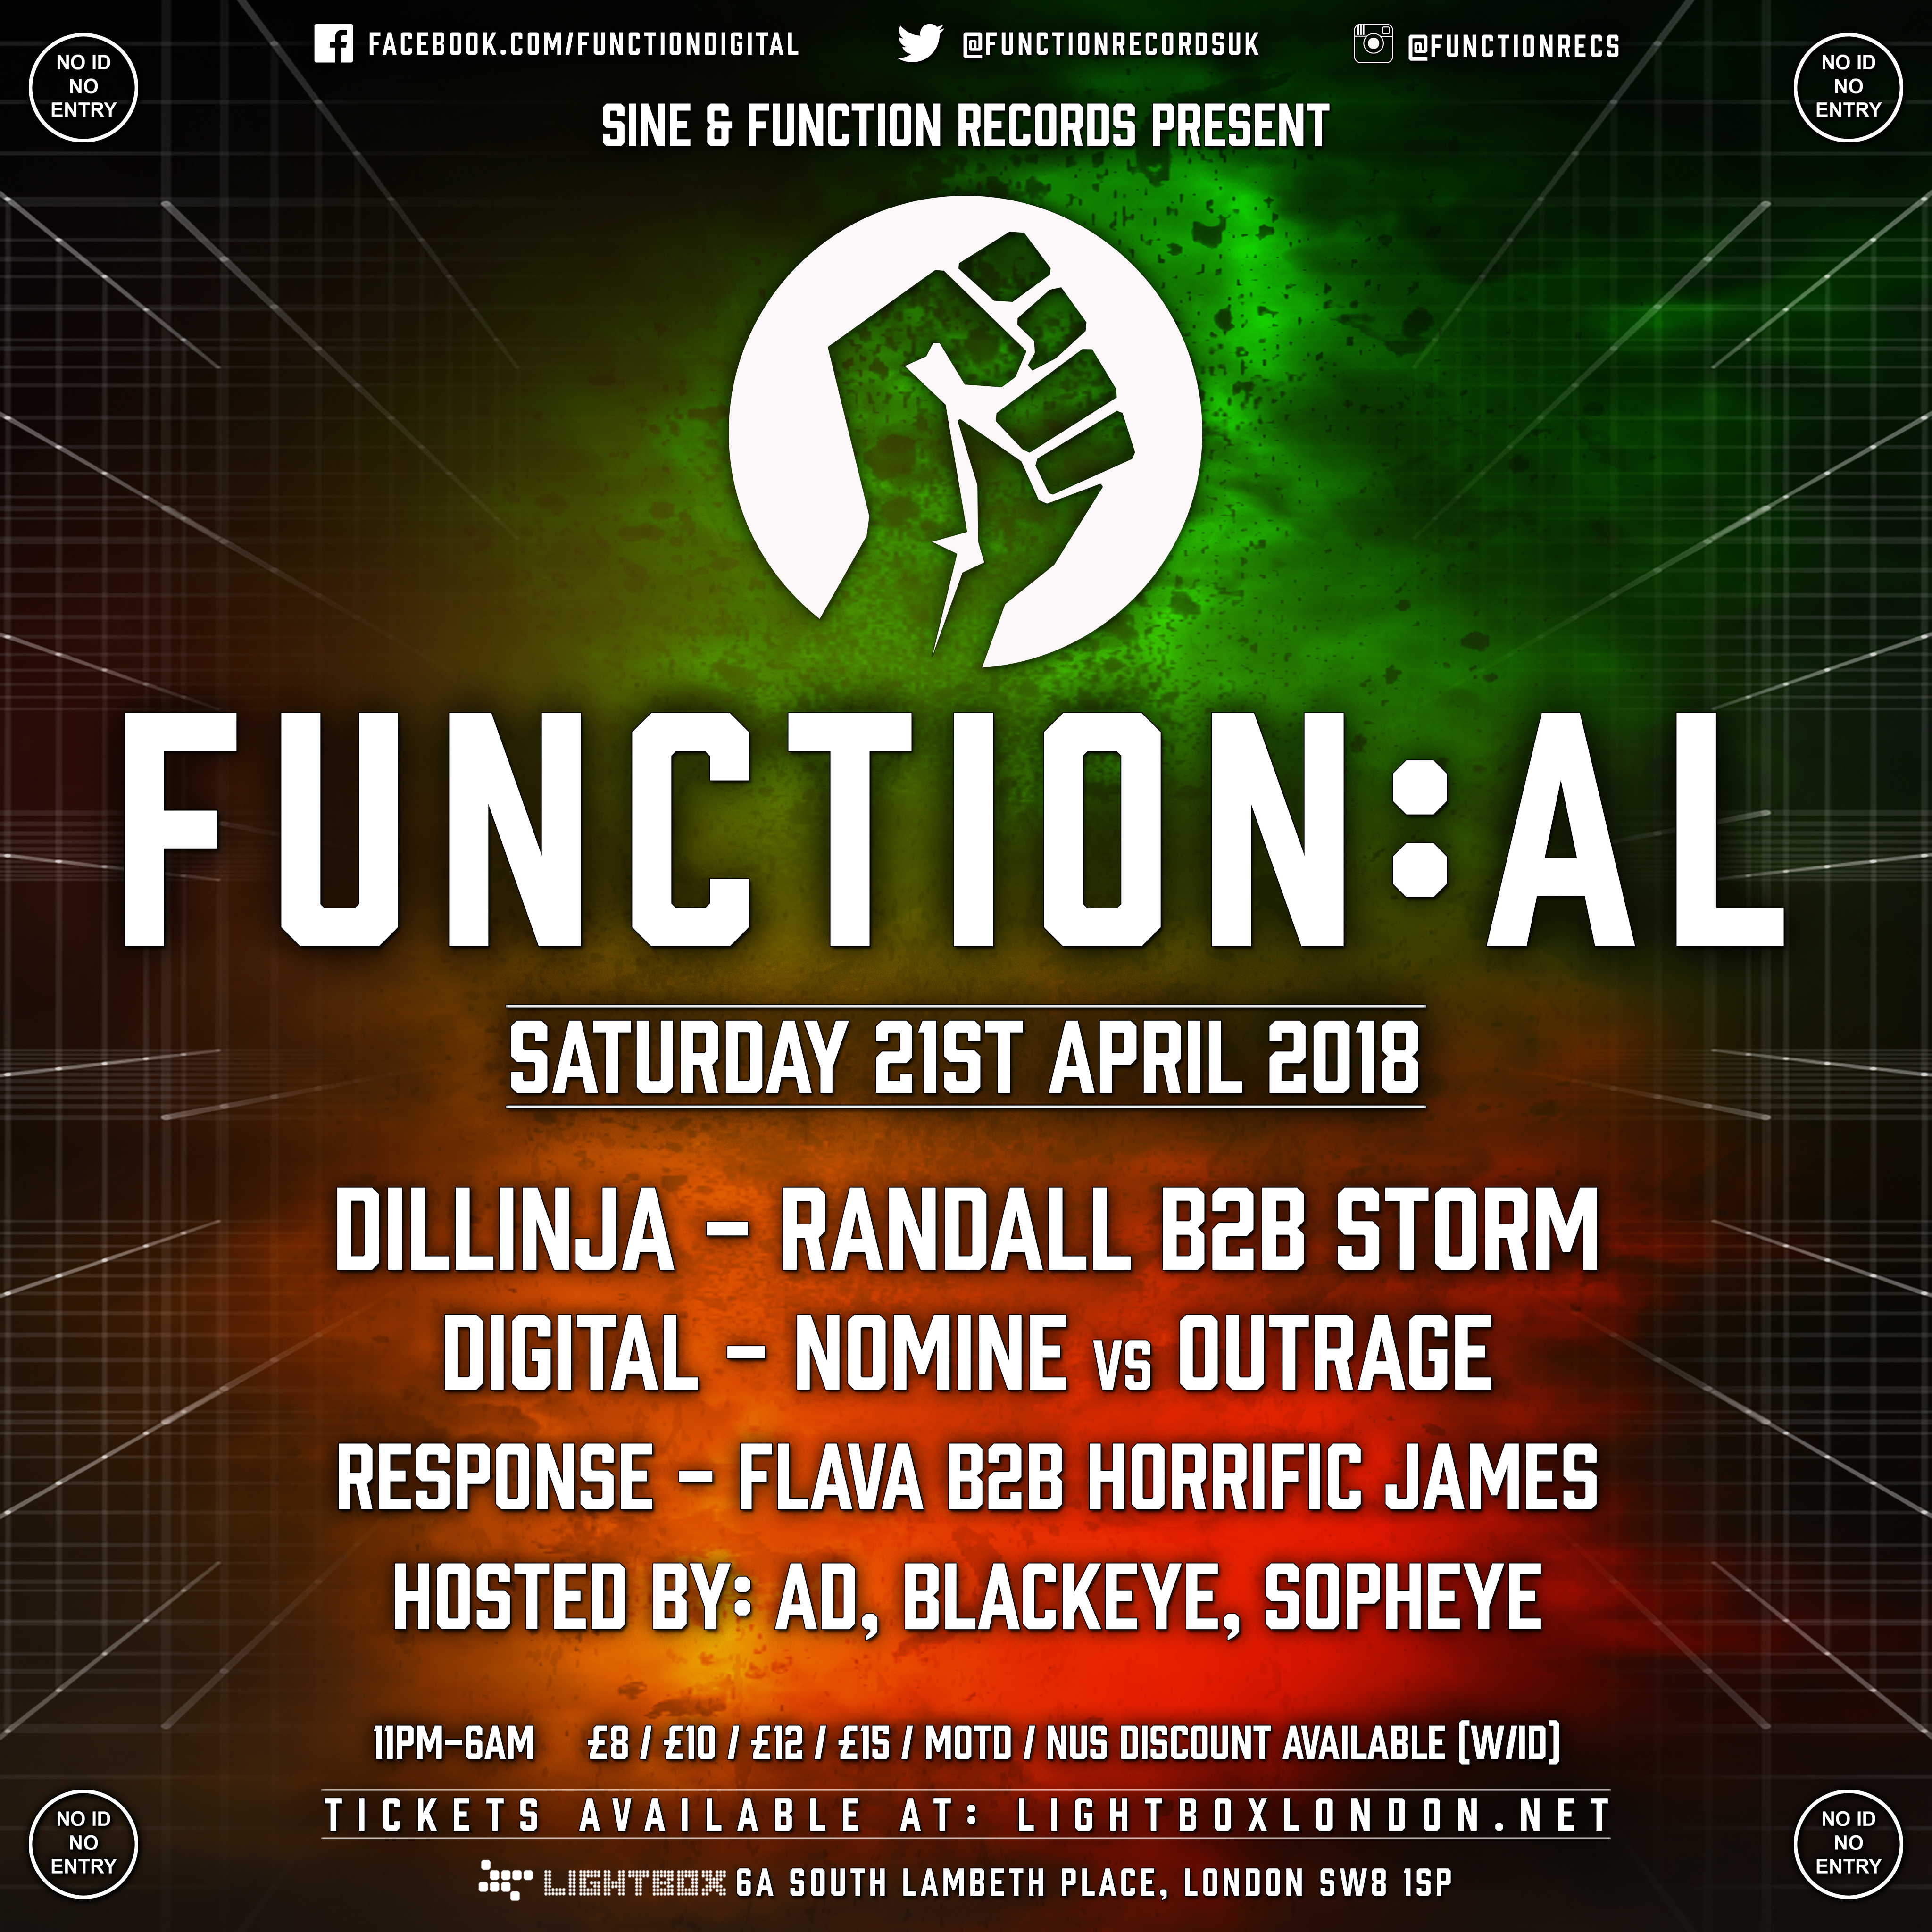 FUNCTION:AL  21ST APRIL 2018